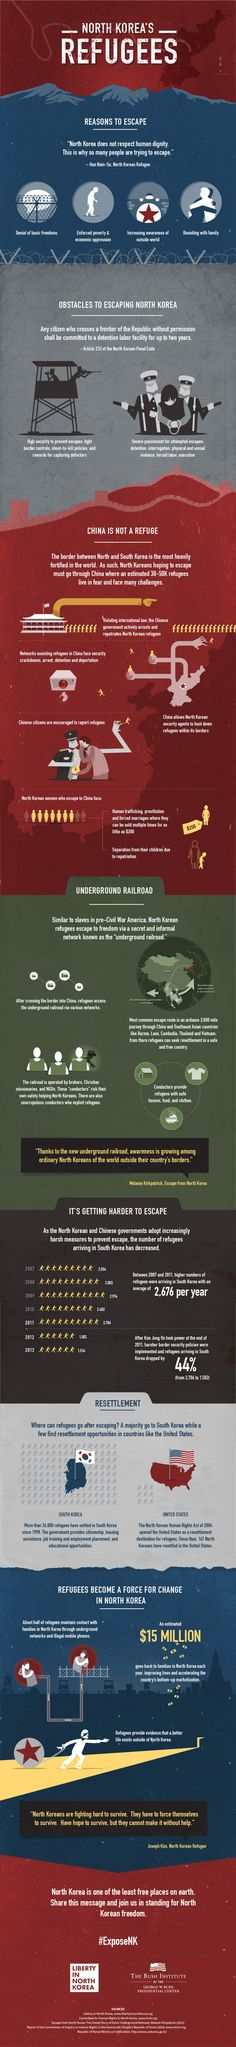 North Korean Refugees Infographic